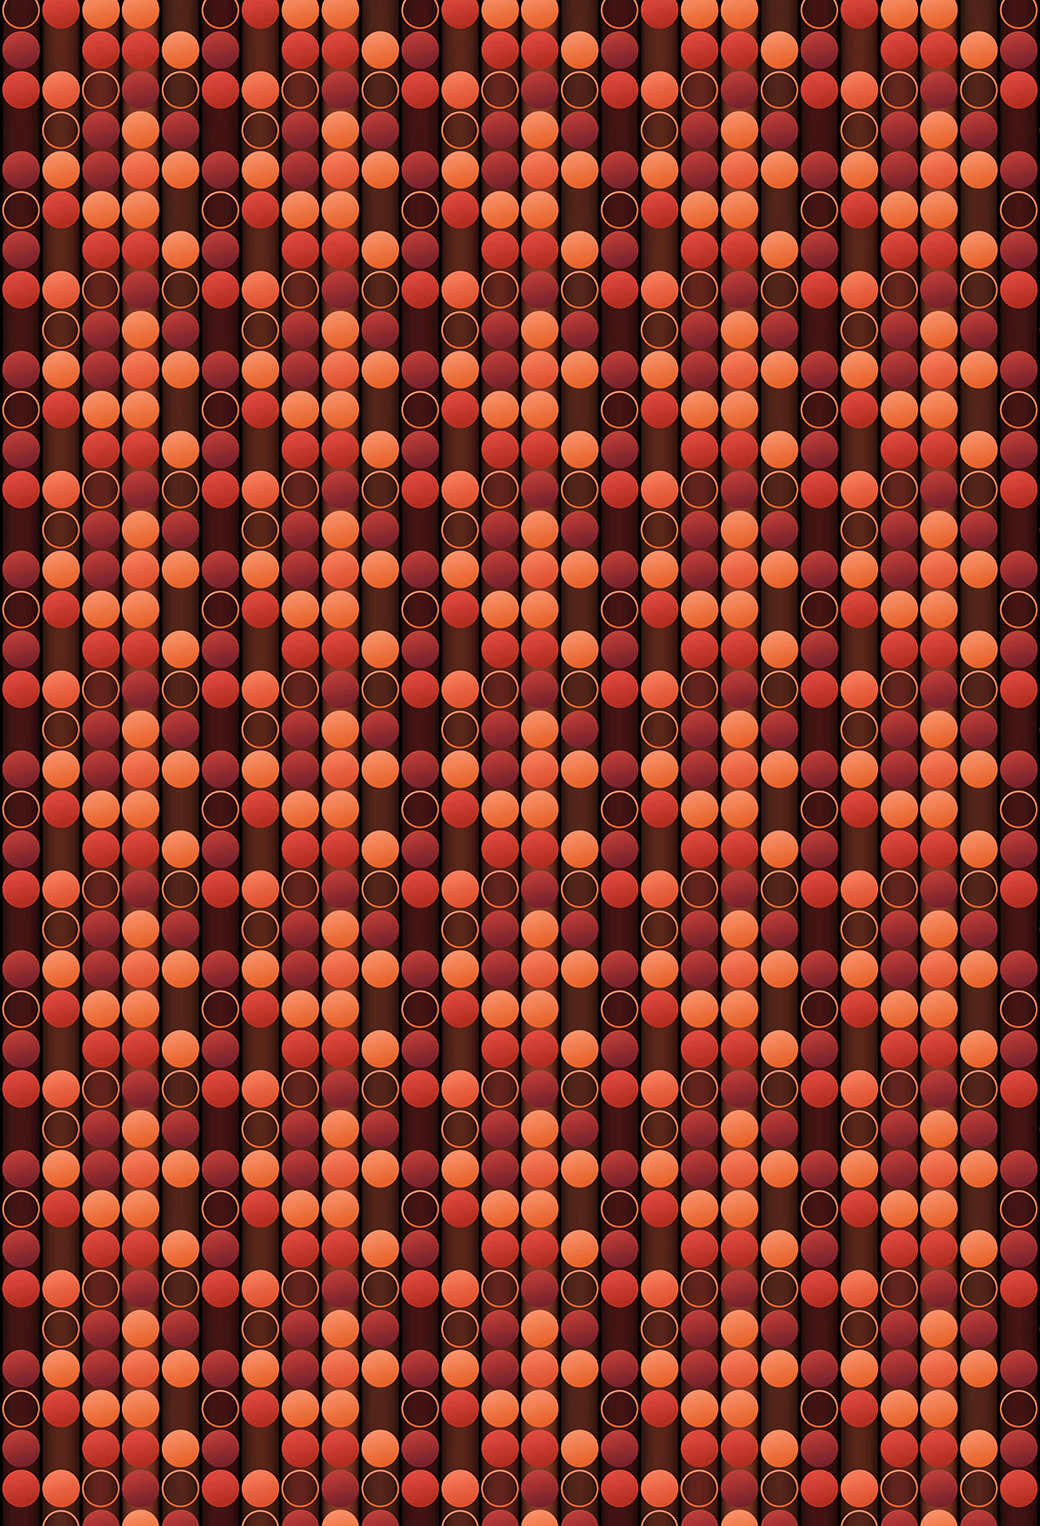 Orange Ellipse 3Wallpapers Iphone Parallax Orange Ellipse